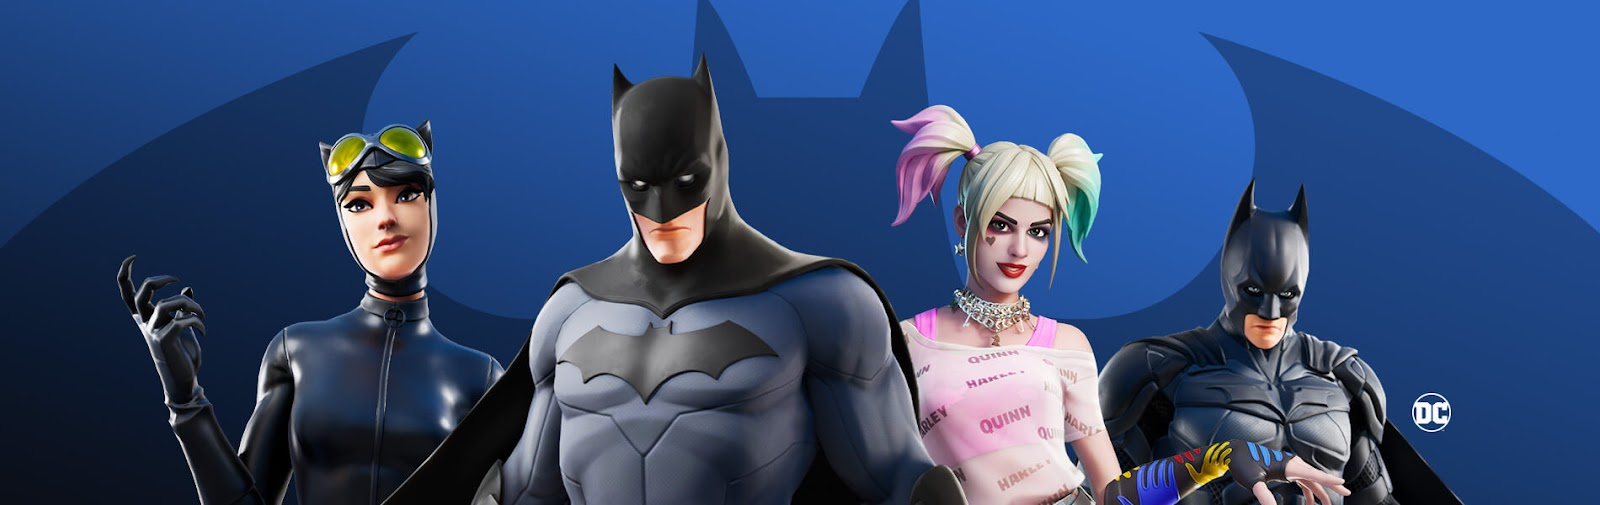 The new Batman x Fortnite latest collab looks to be intriguing, with so many of the Batman rogue gallery set to appear in the storyline